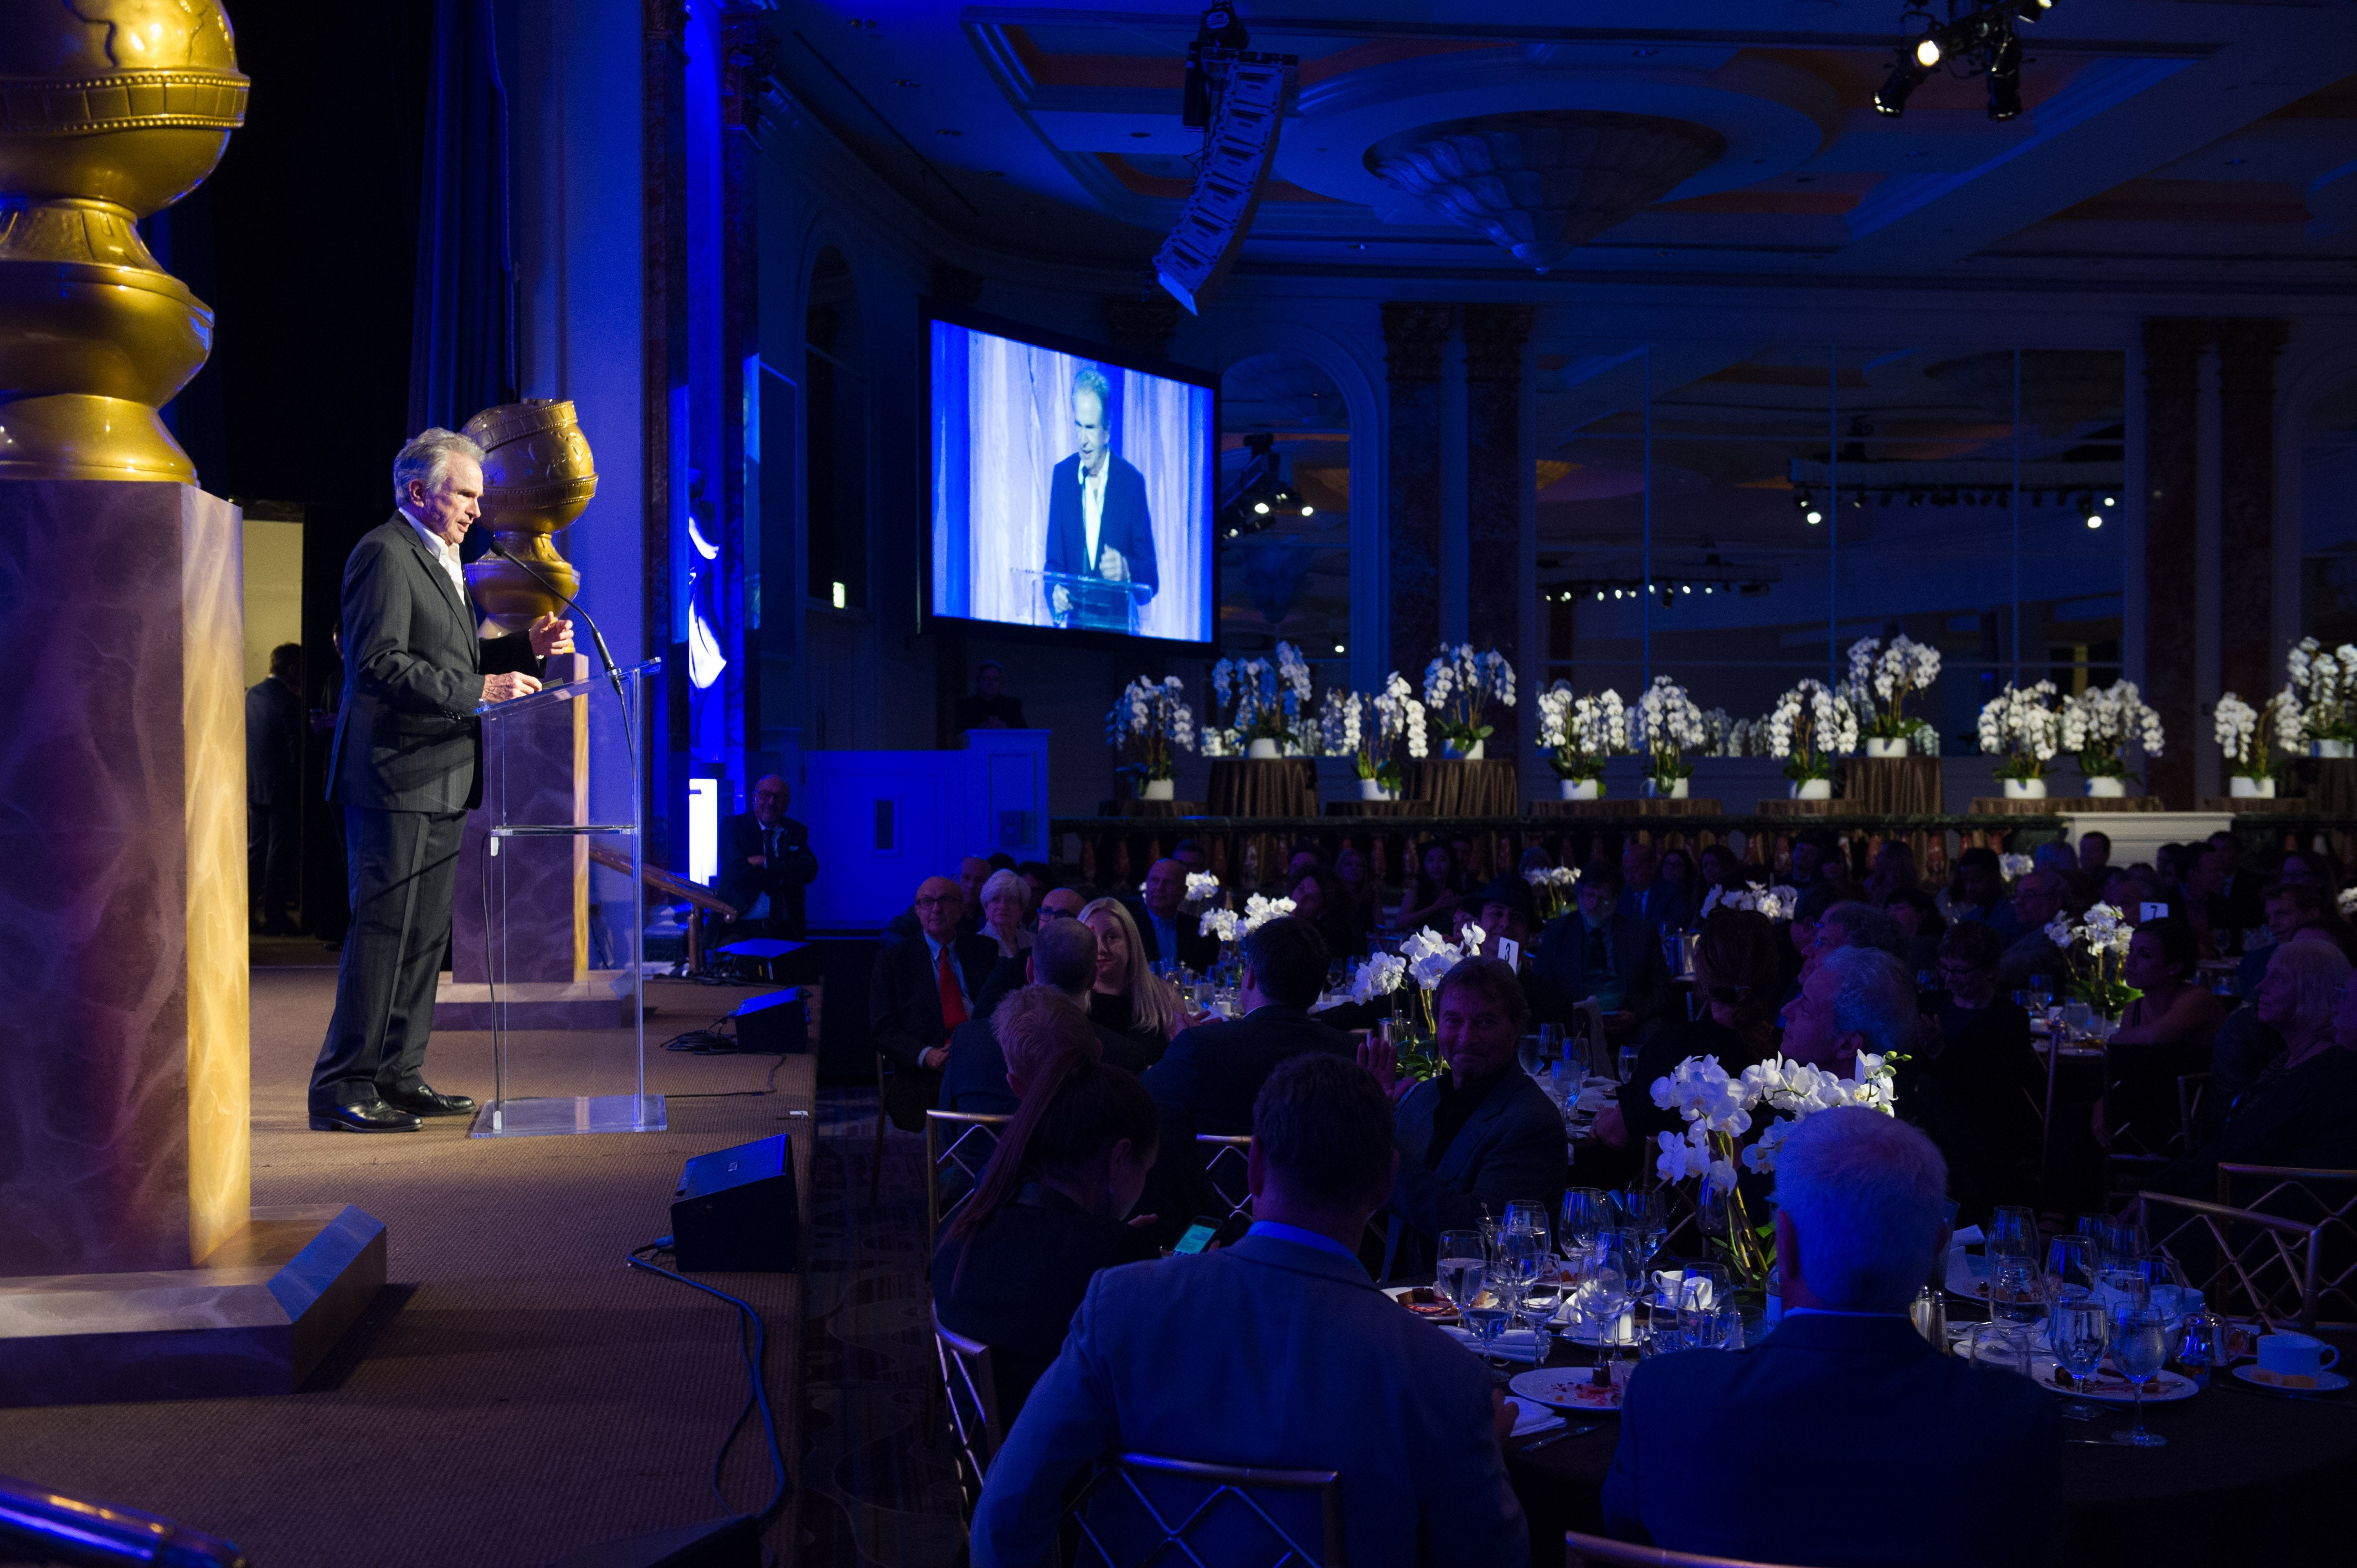 Warren Beatty presents grants at the 2016 Grants Banquet